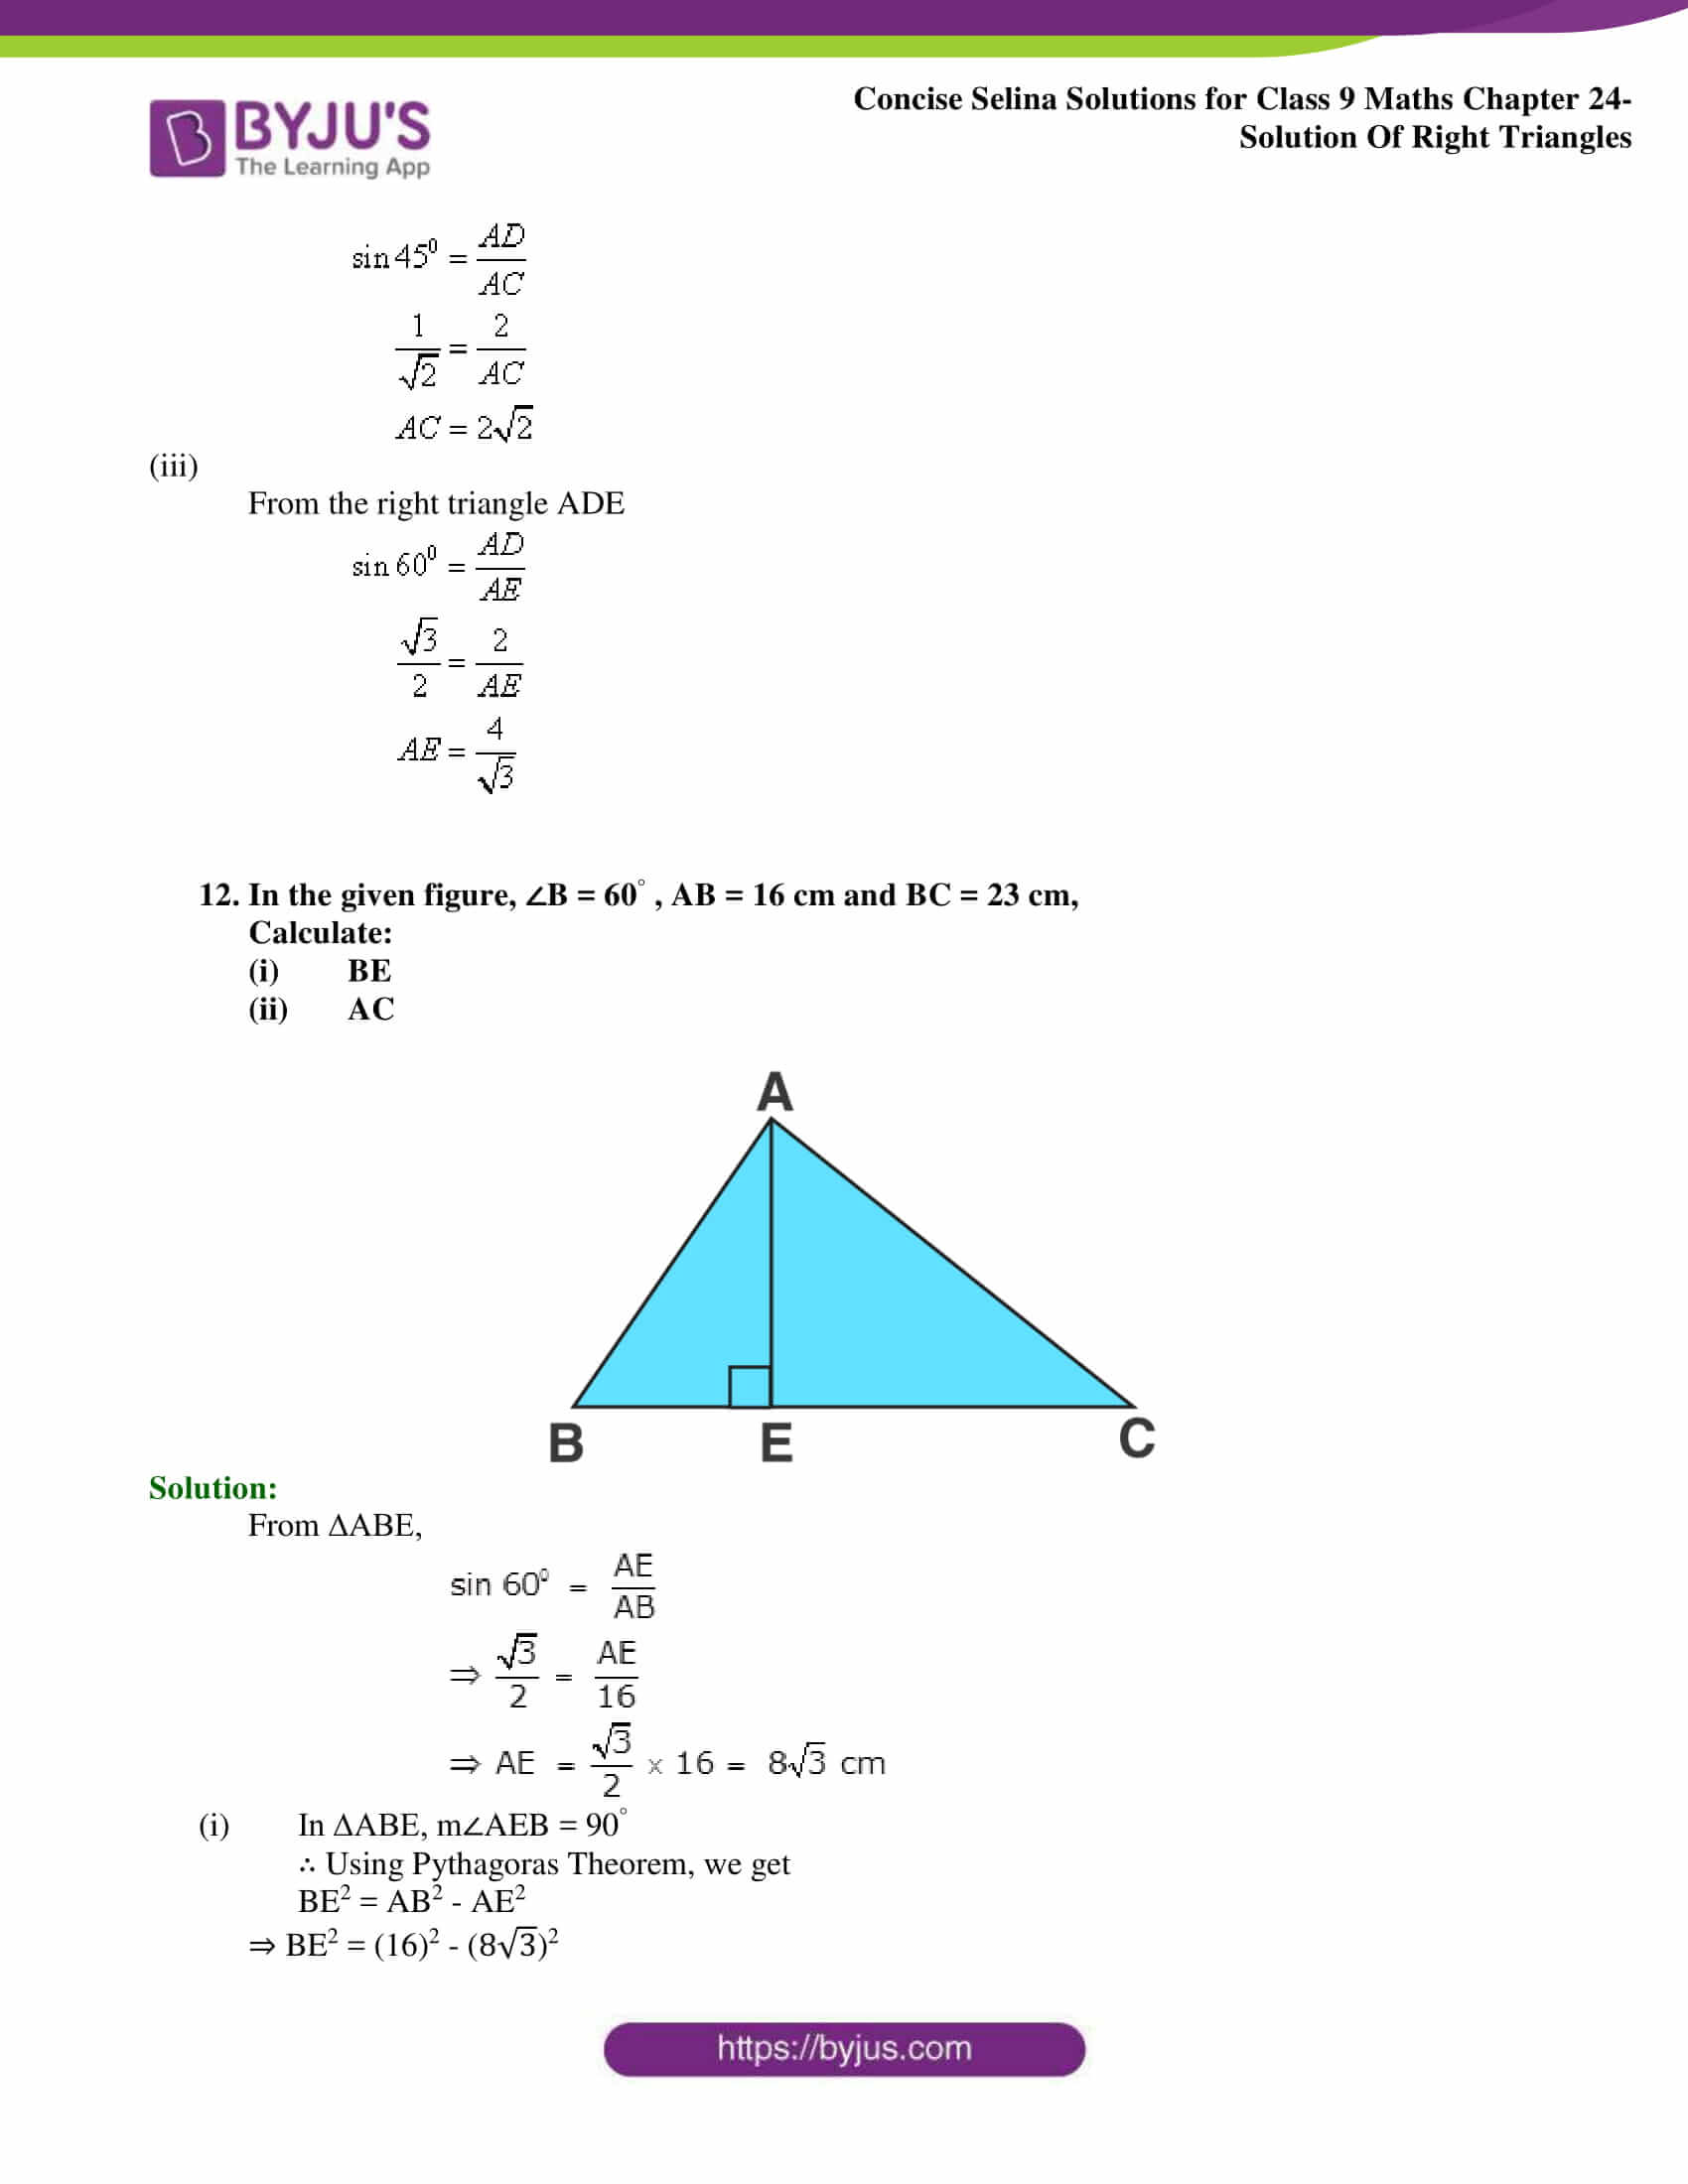 Concise Selina Solutions Class 9 Maths Chapter 24 Solution Of Right Triangles part 13